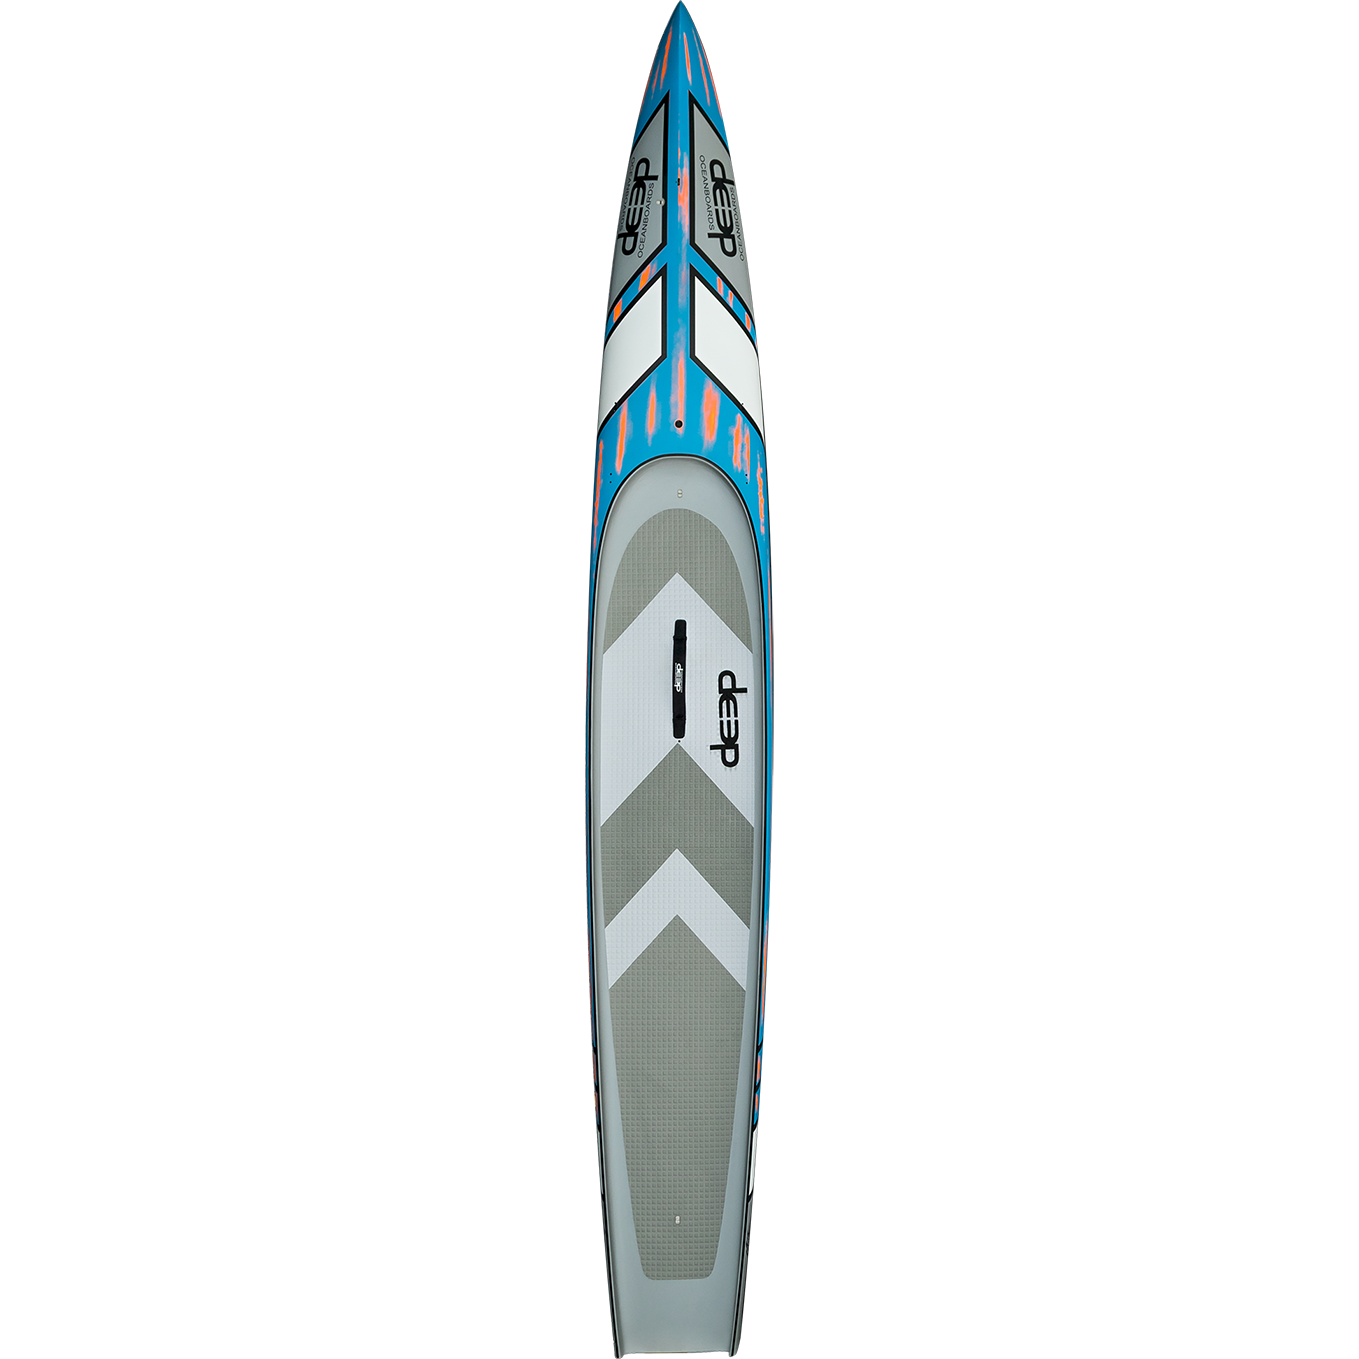 DEEP Fireball 14' Racing SUP